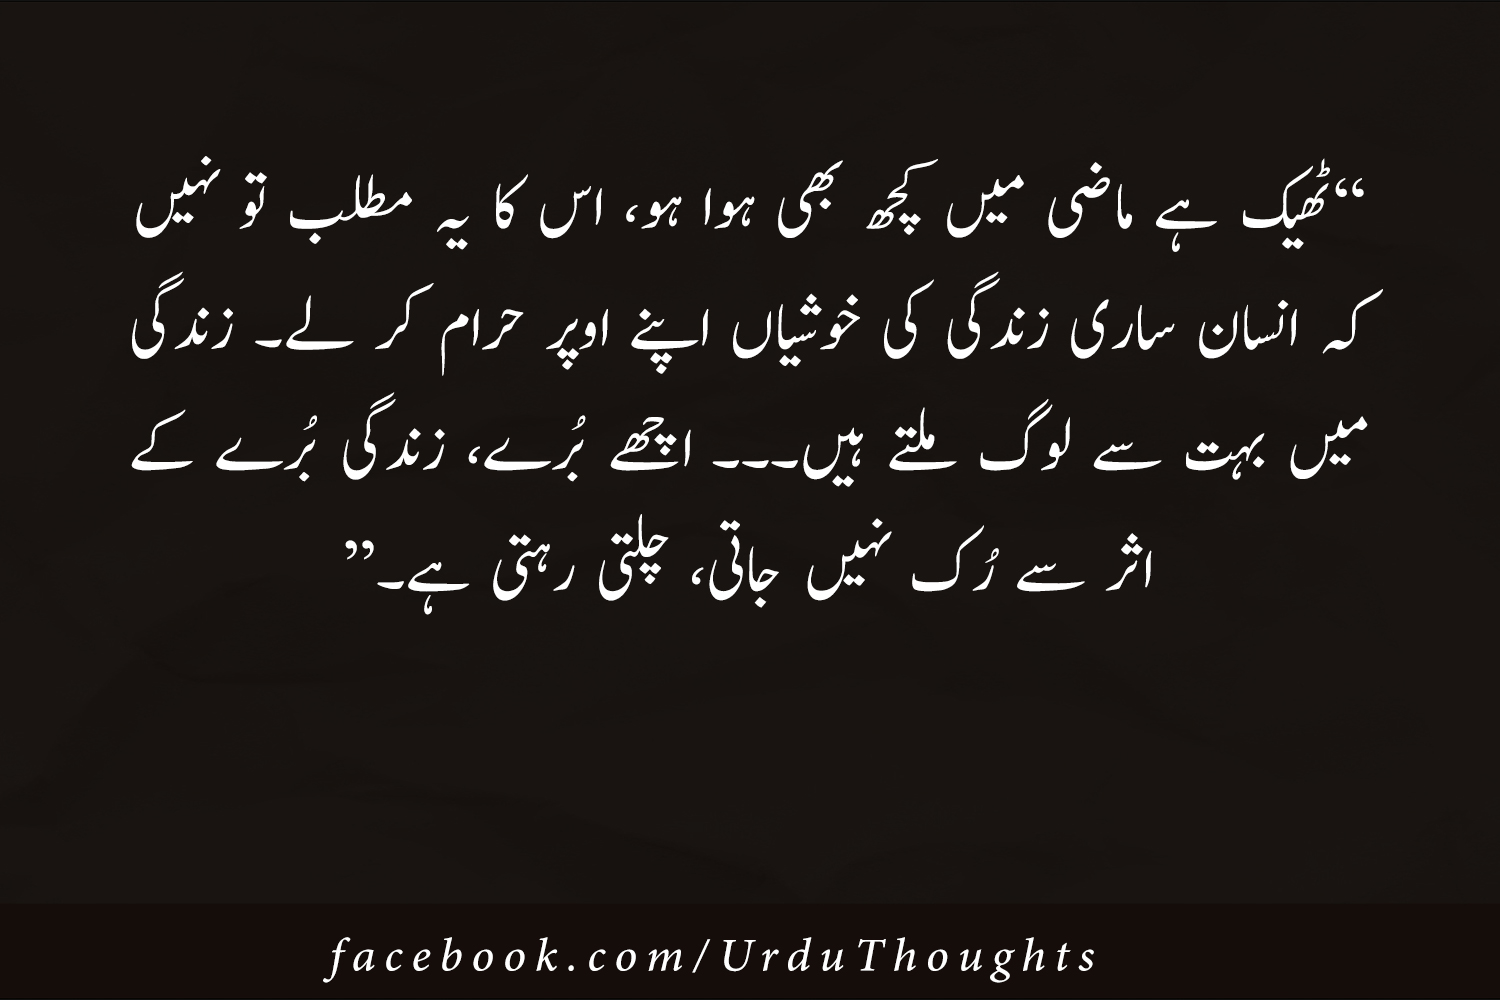 18 Best Inspirational Quotes On Life In Urdu - Urdu Thoughts